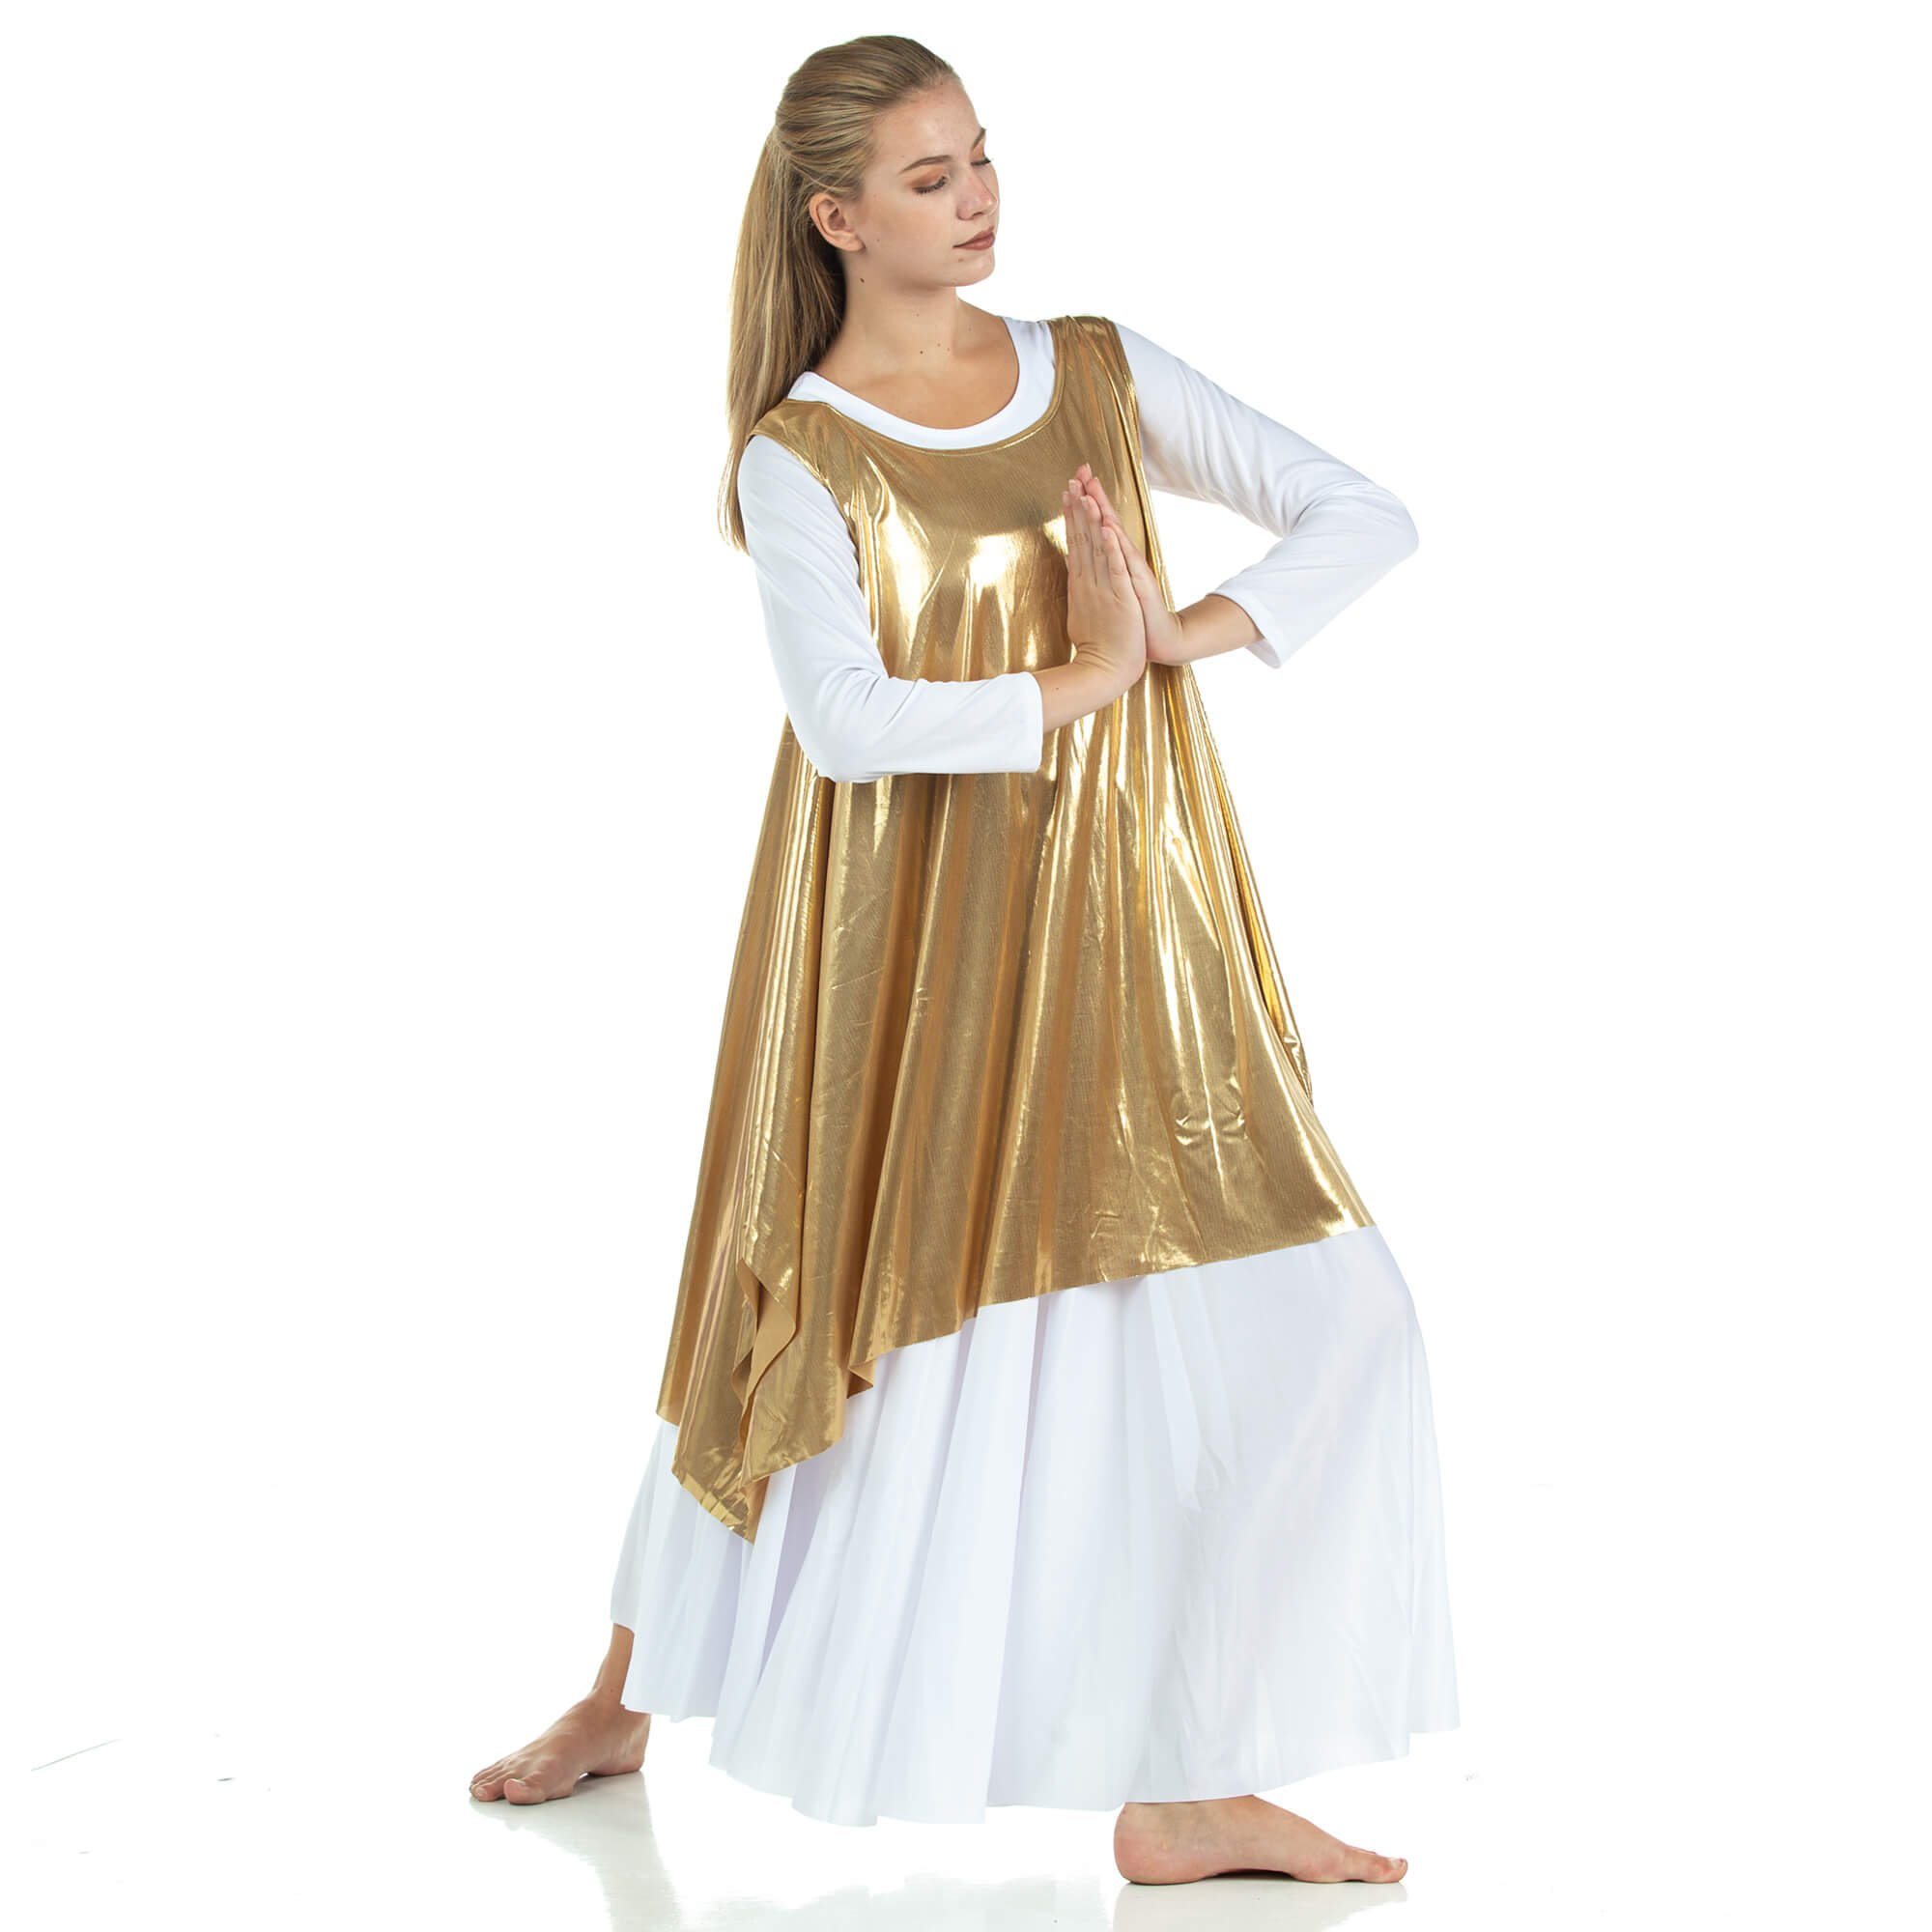 Praise and worship dance dresses pictures